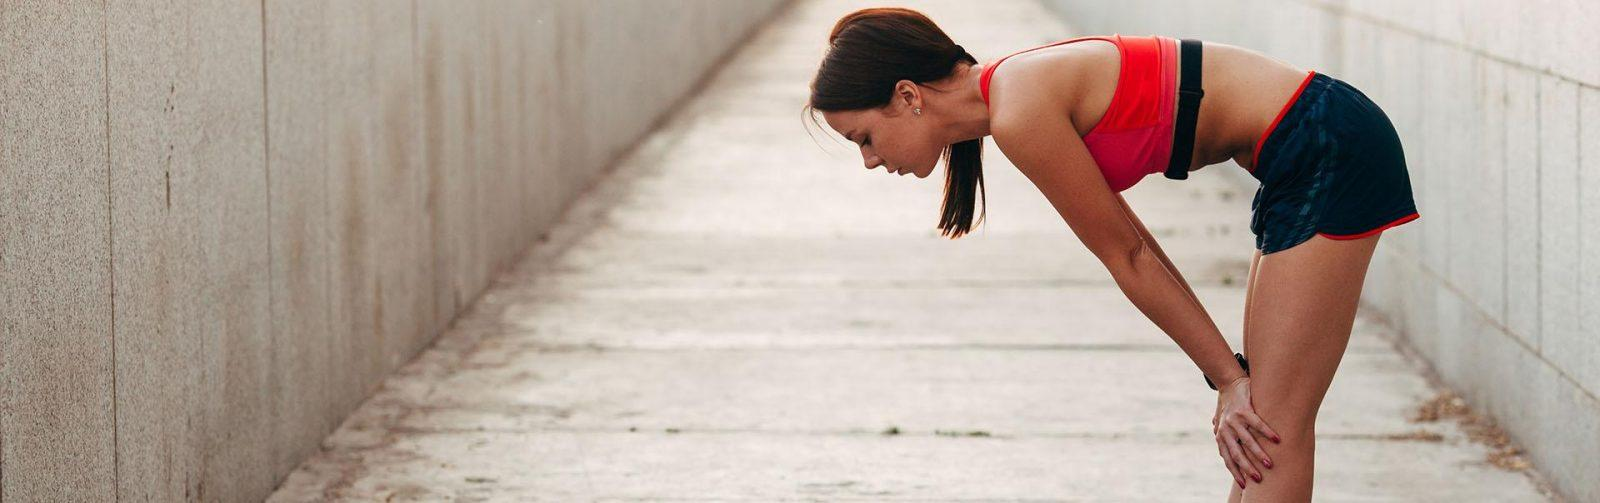 SIGNS AND SYMPTOMS OF OVERTRAINING